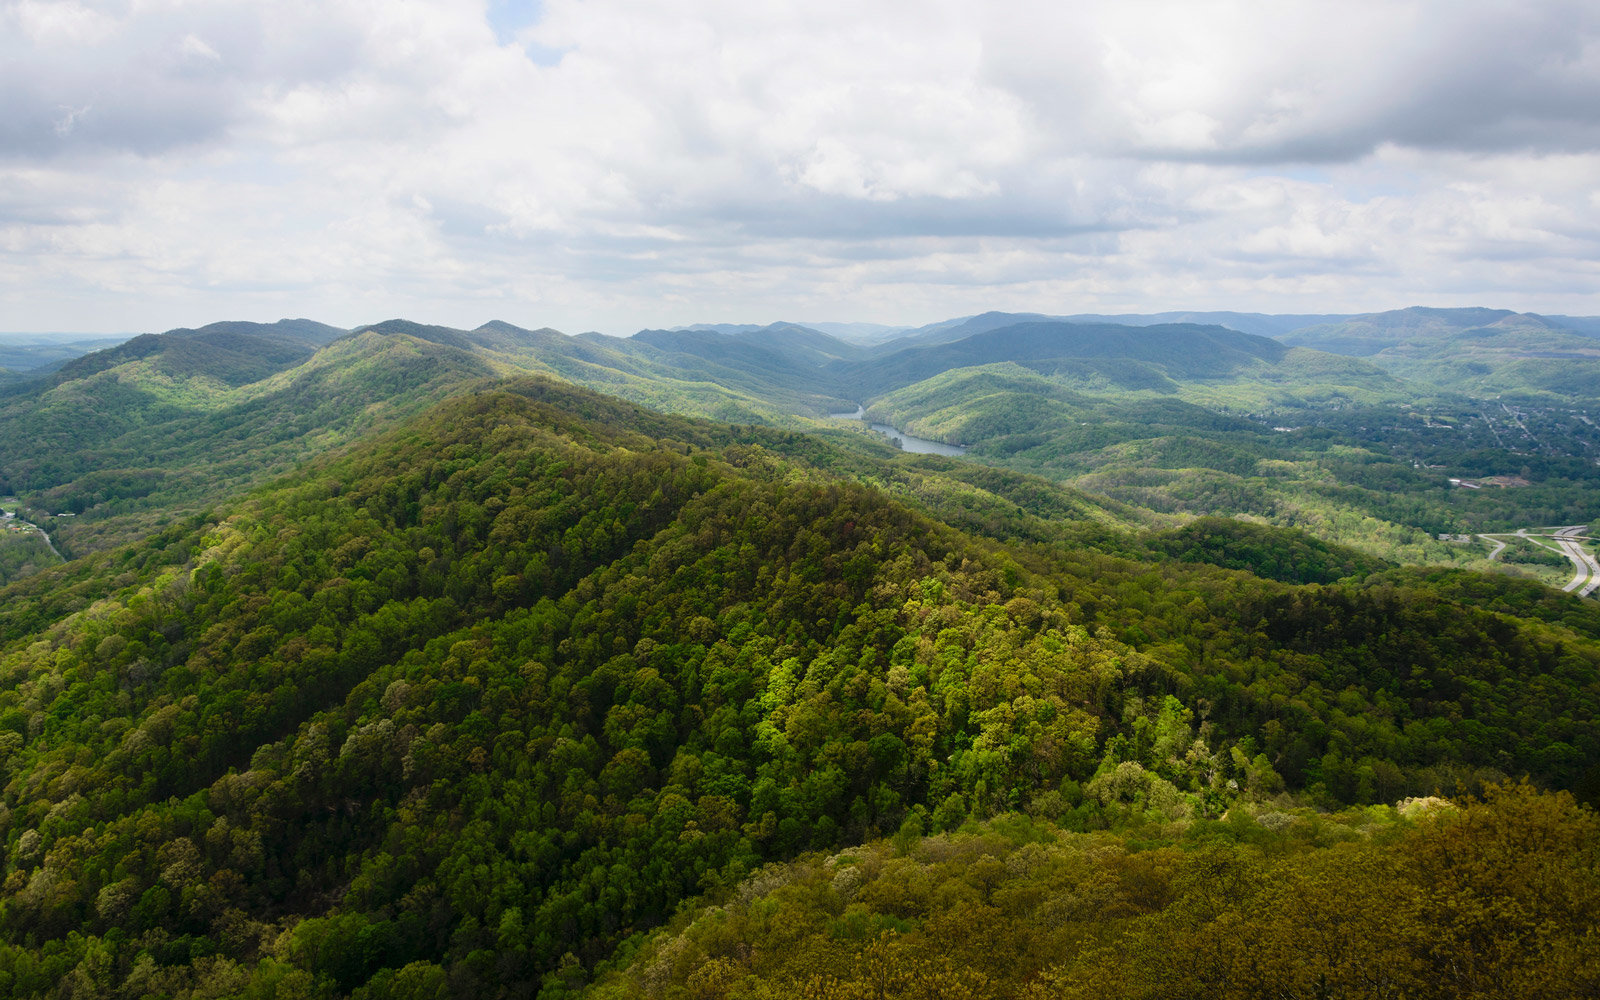 The view from Pinnacle Point in Cumberland Gap National Historical Park at the border of three states: Virginia, Tennessee, and Kentucky.